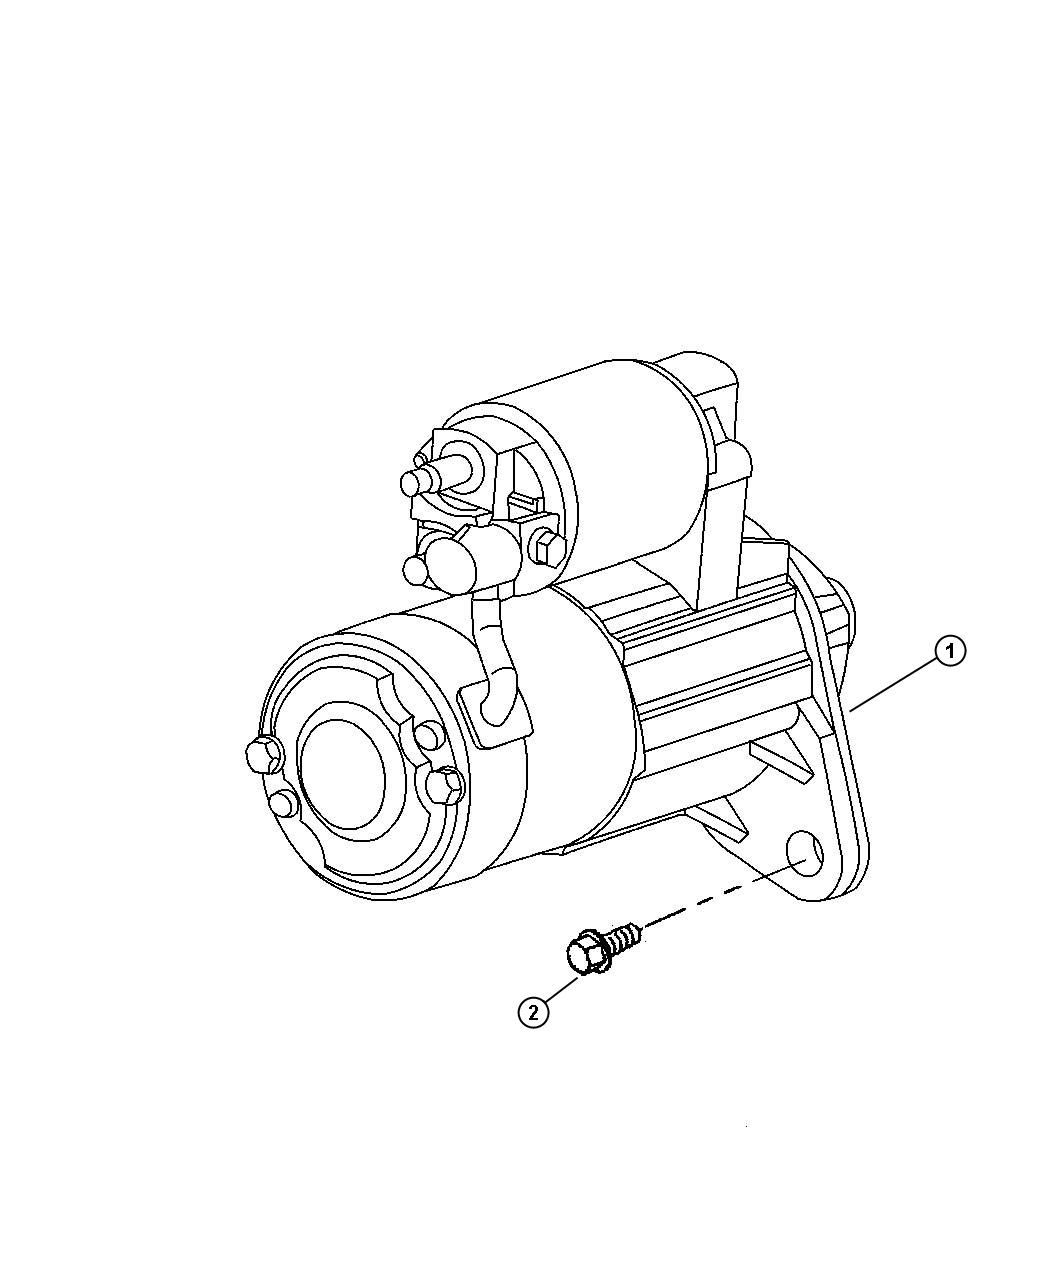 2011 chrysler town  u0026 country starter  engine  remanufactured  controls  maintenance  related